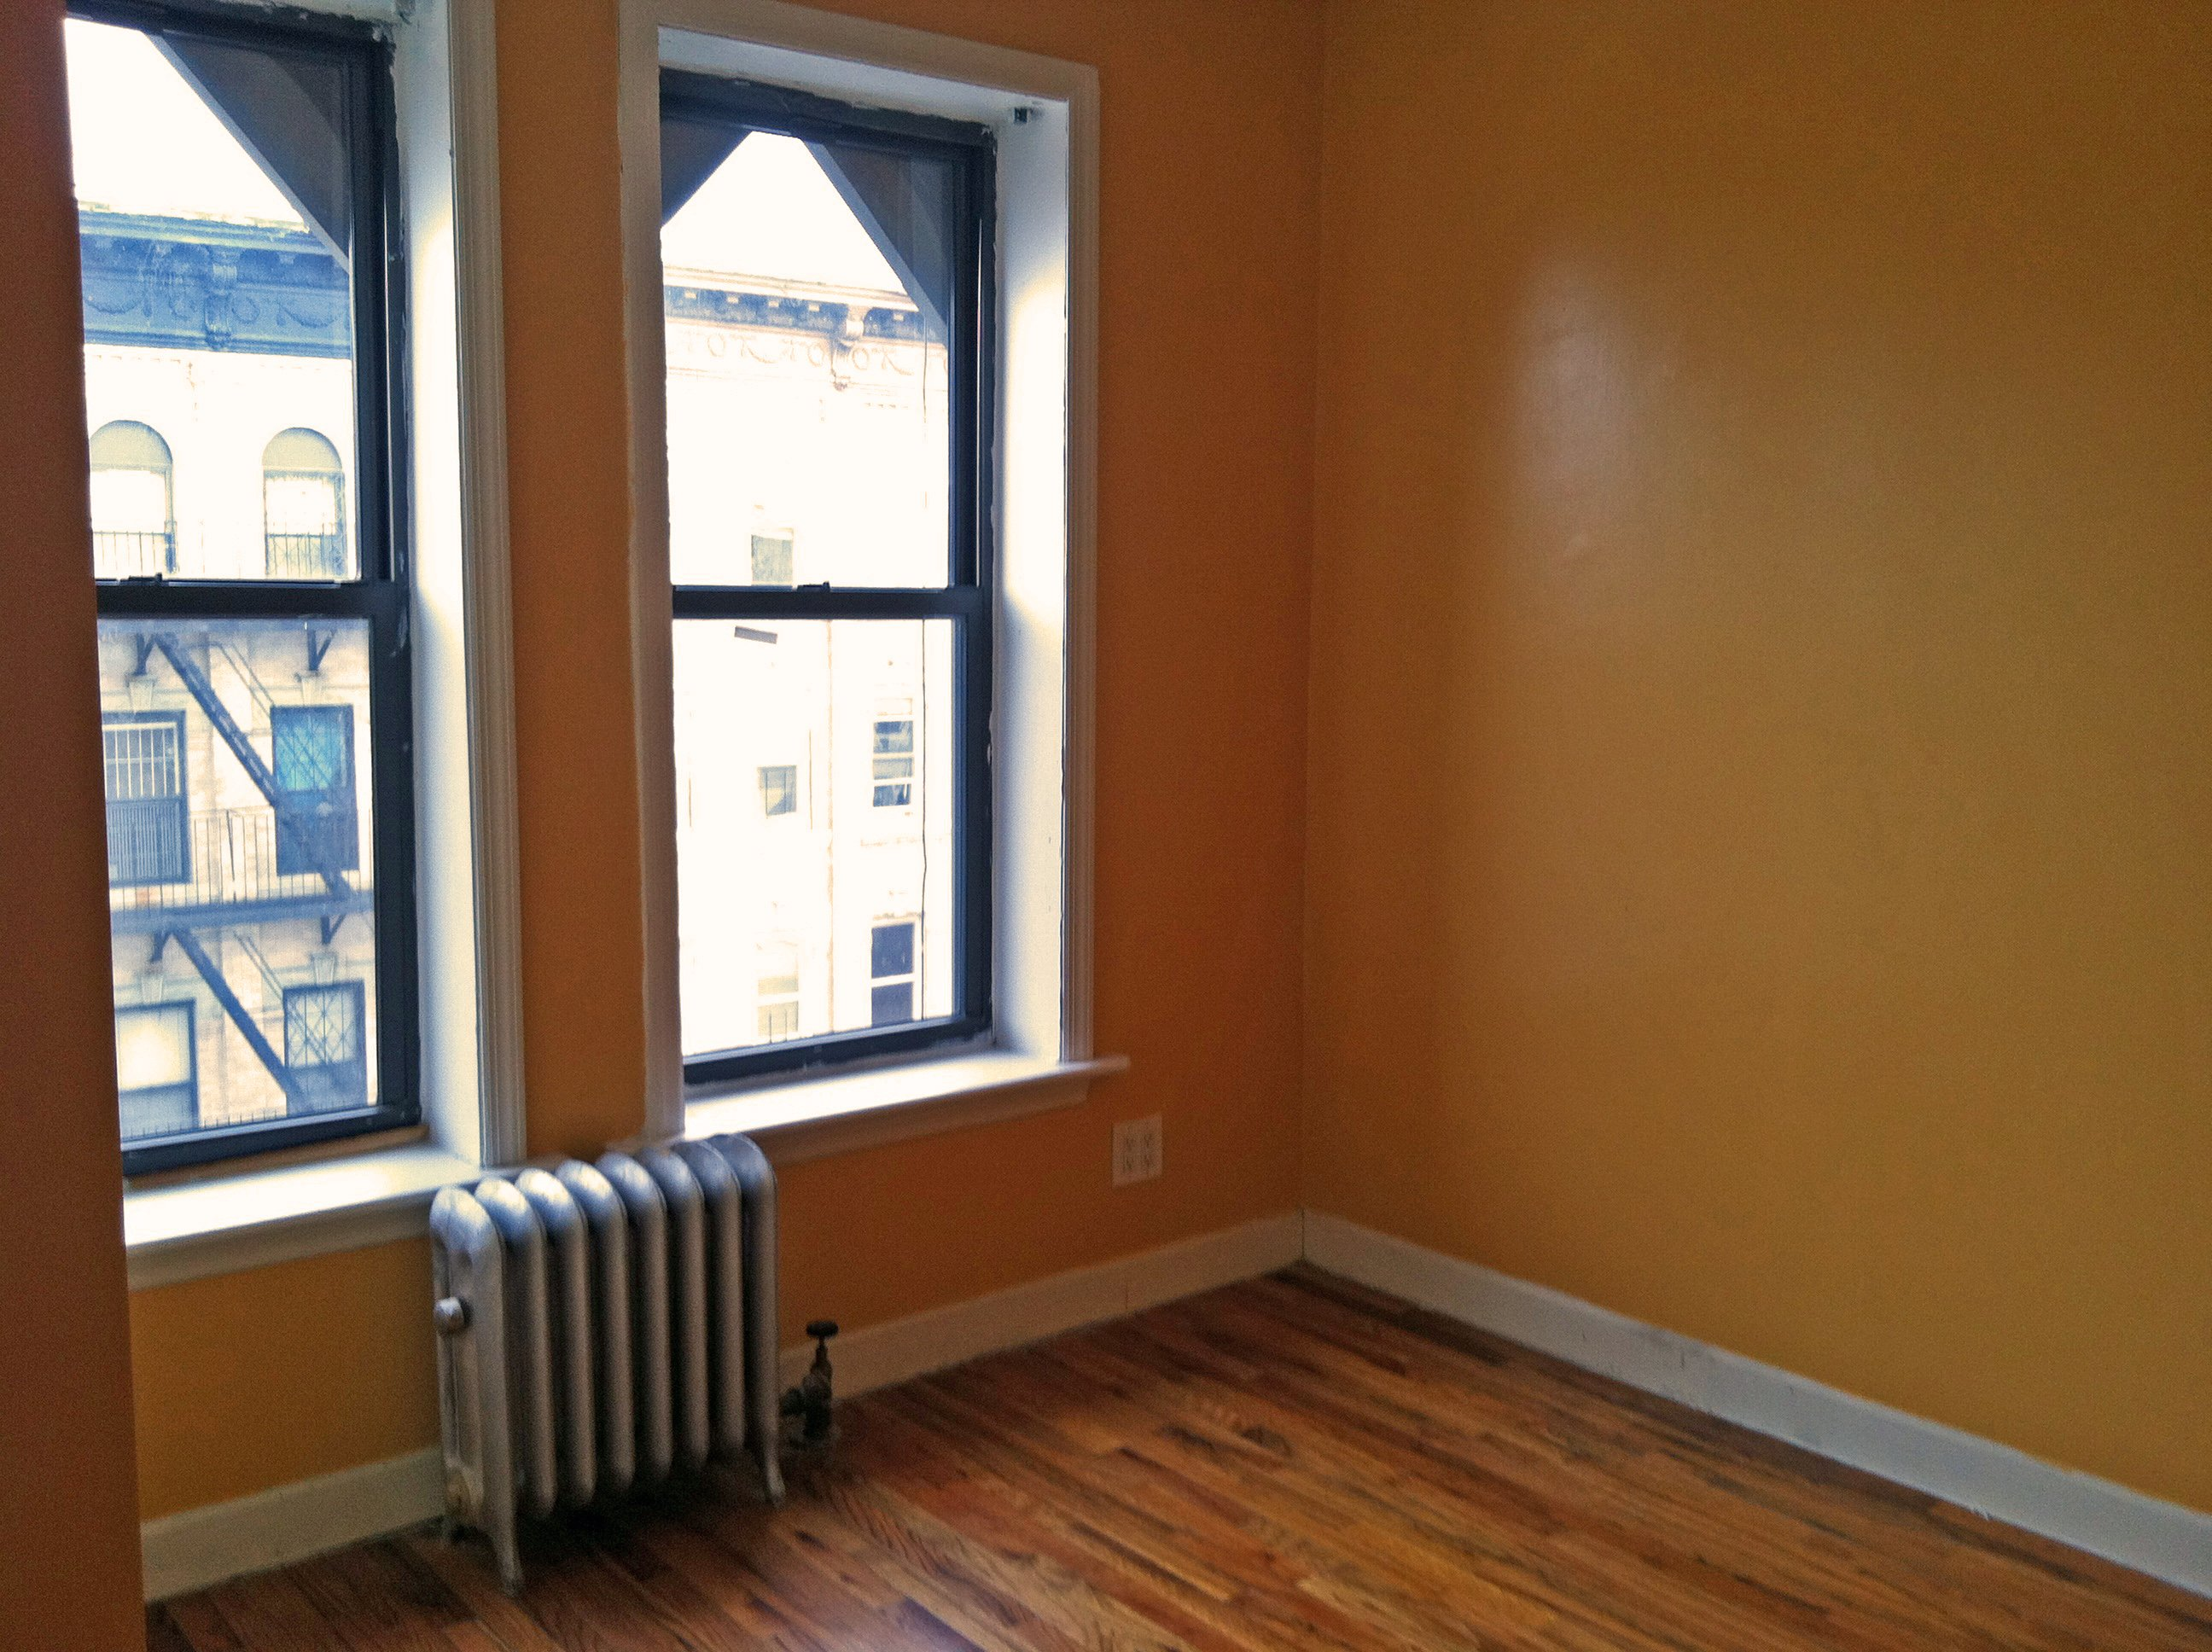 Crown heights 2 bedroom apartment for rent brooklyn crg3120 for Apartments for rent two bedroom